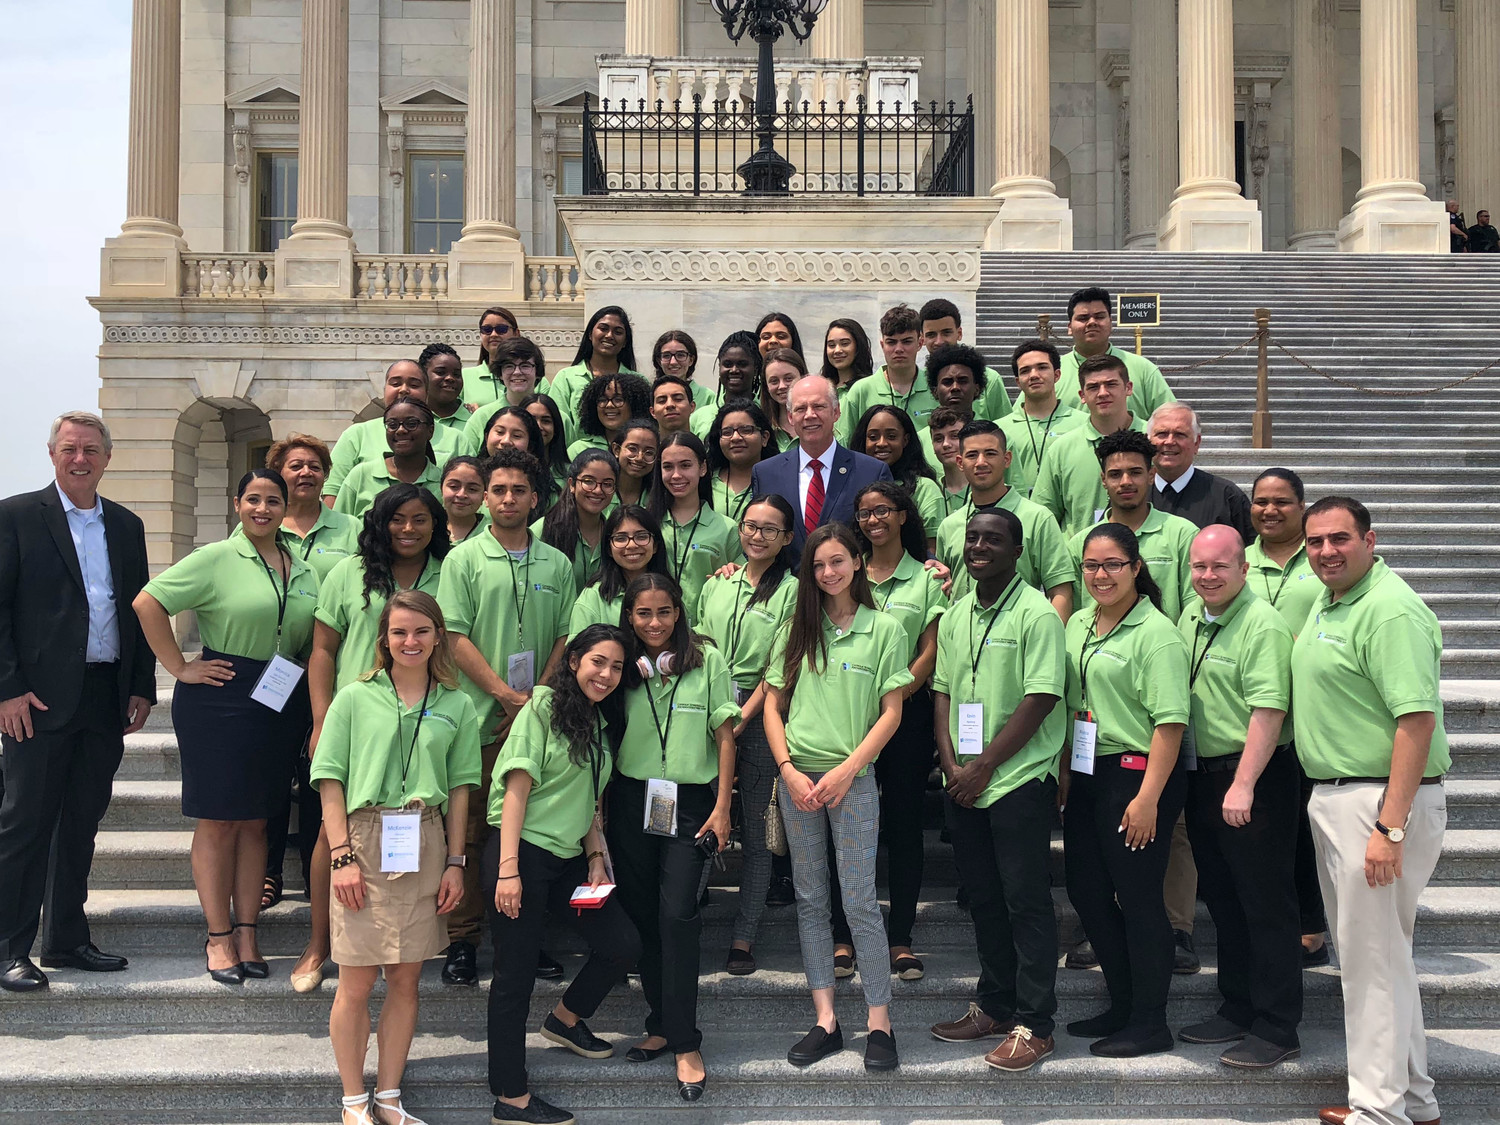 Students and archdiocese education officials stand on the steps of the U.S. Capitol for a photo with Dr. Timothy J. McNiff, superintendent of schools, left, and Rep. Dan Donovan, R-NY, center, during a trip for 40 Catholic high school students to Washington, D.C., June 7 and 8.